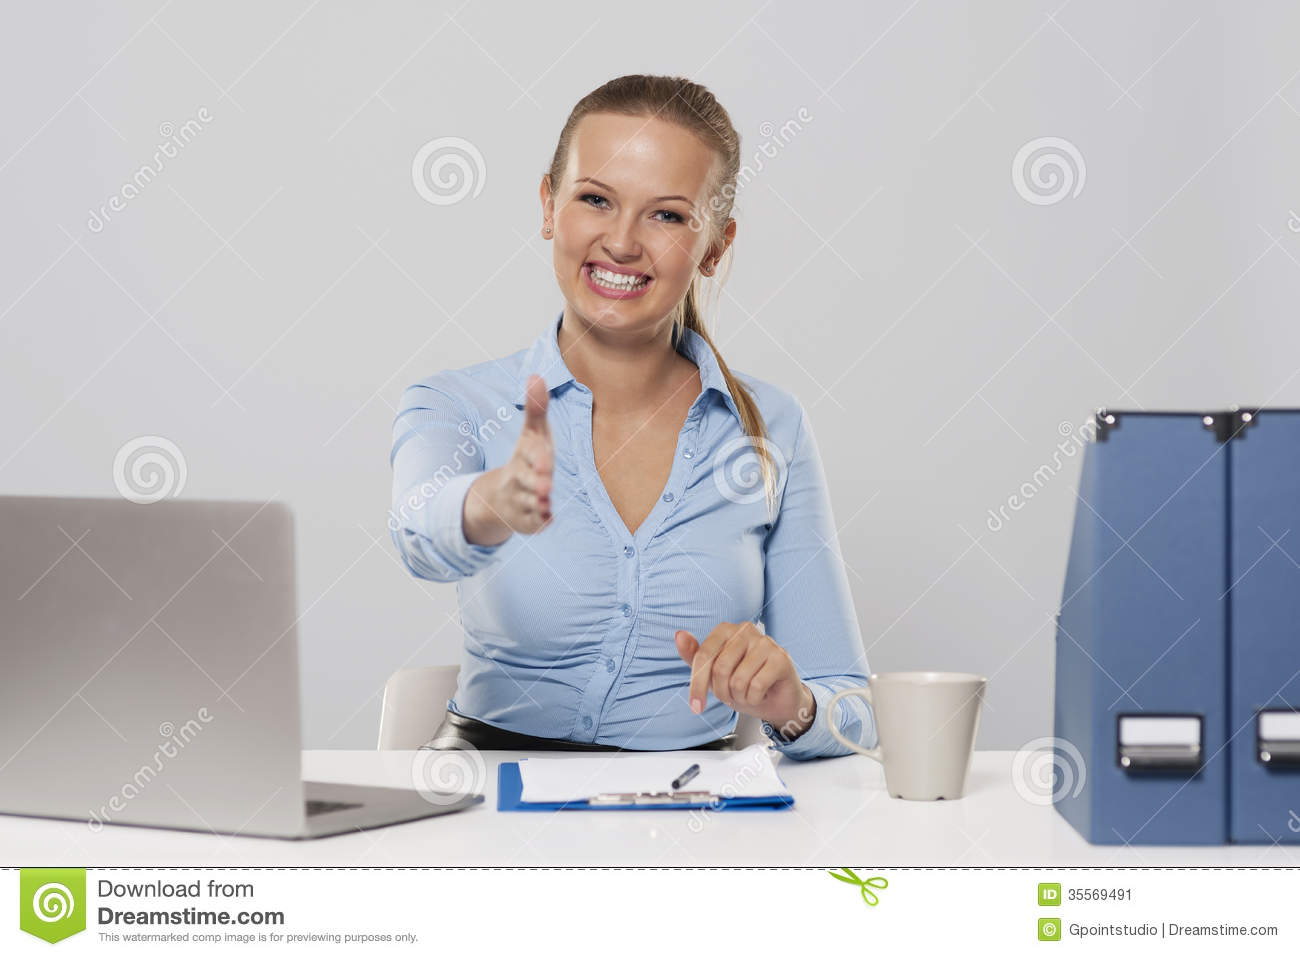 Welcome in my office stock image. Image of contemporary - 35569491 5acd22e89a07